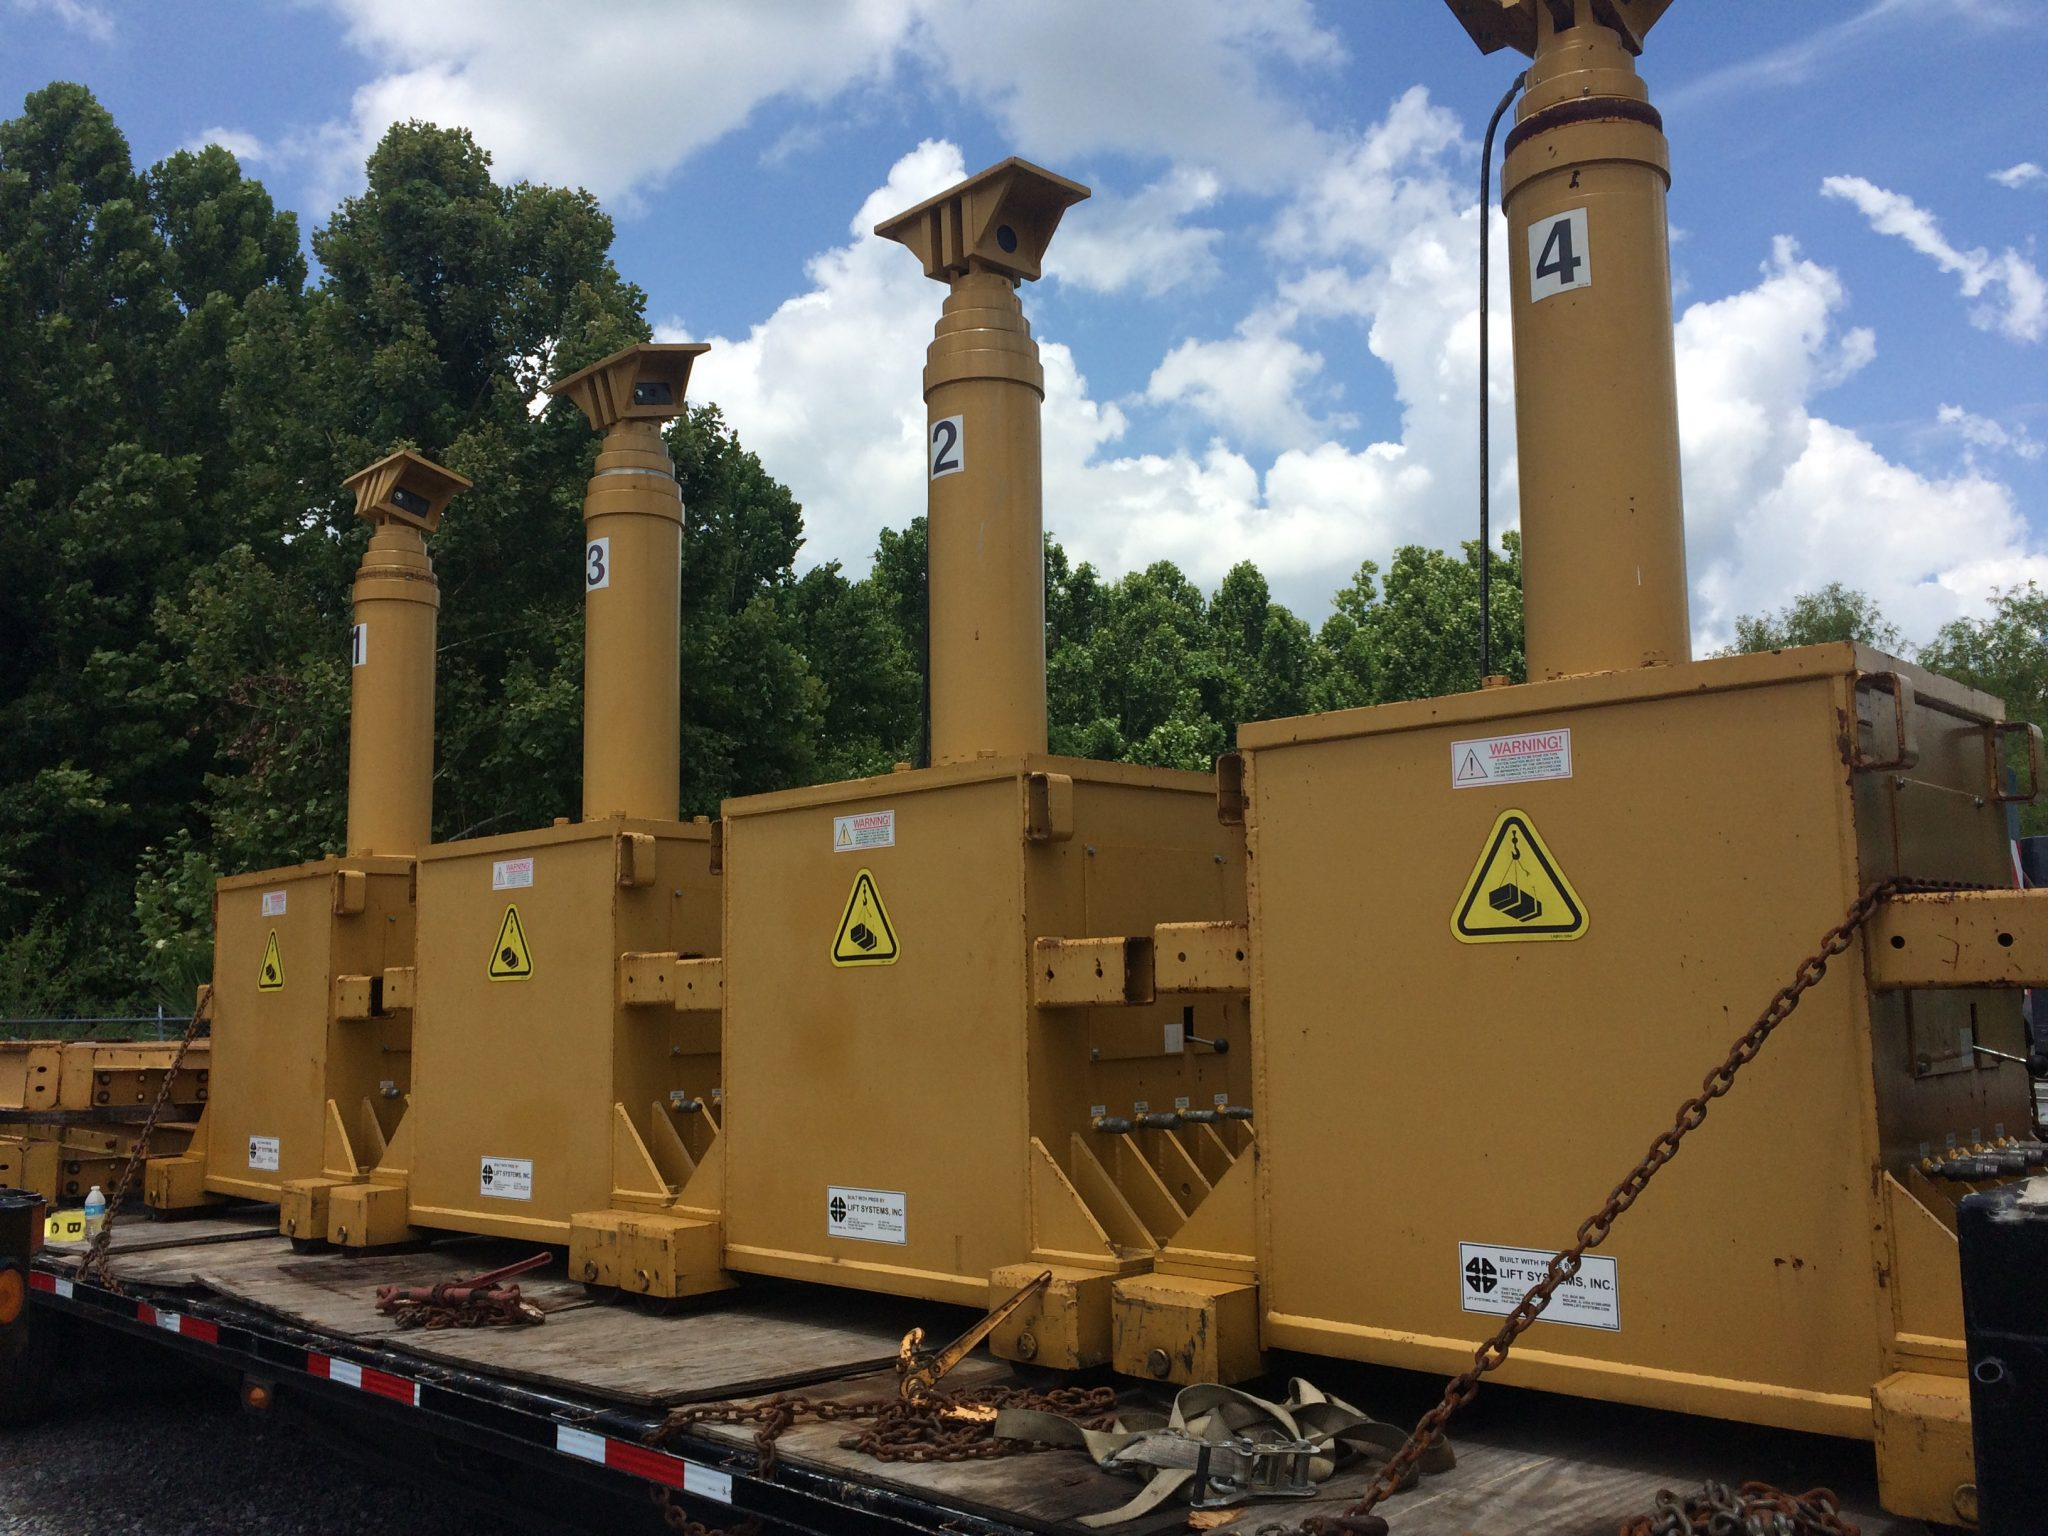 400 Ton Capacity Lift Systems 4-Point Hydraulic Gantry For Sale